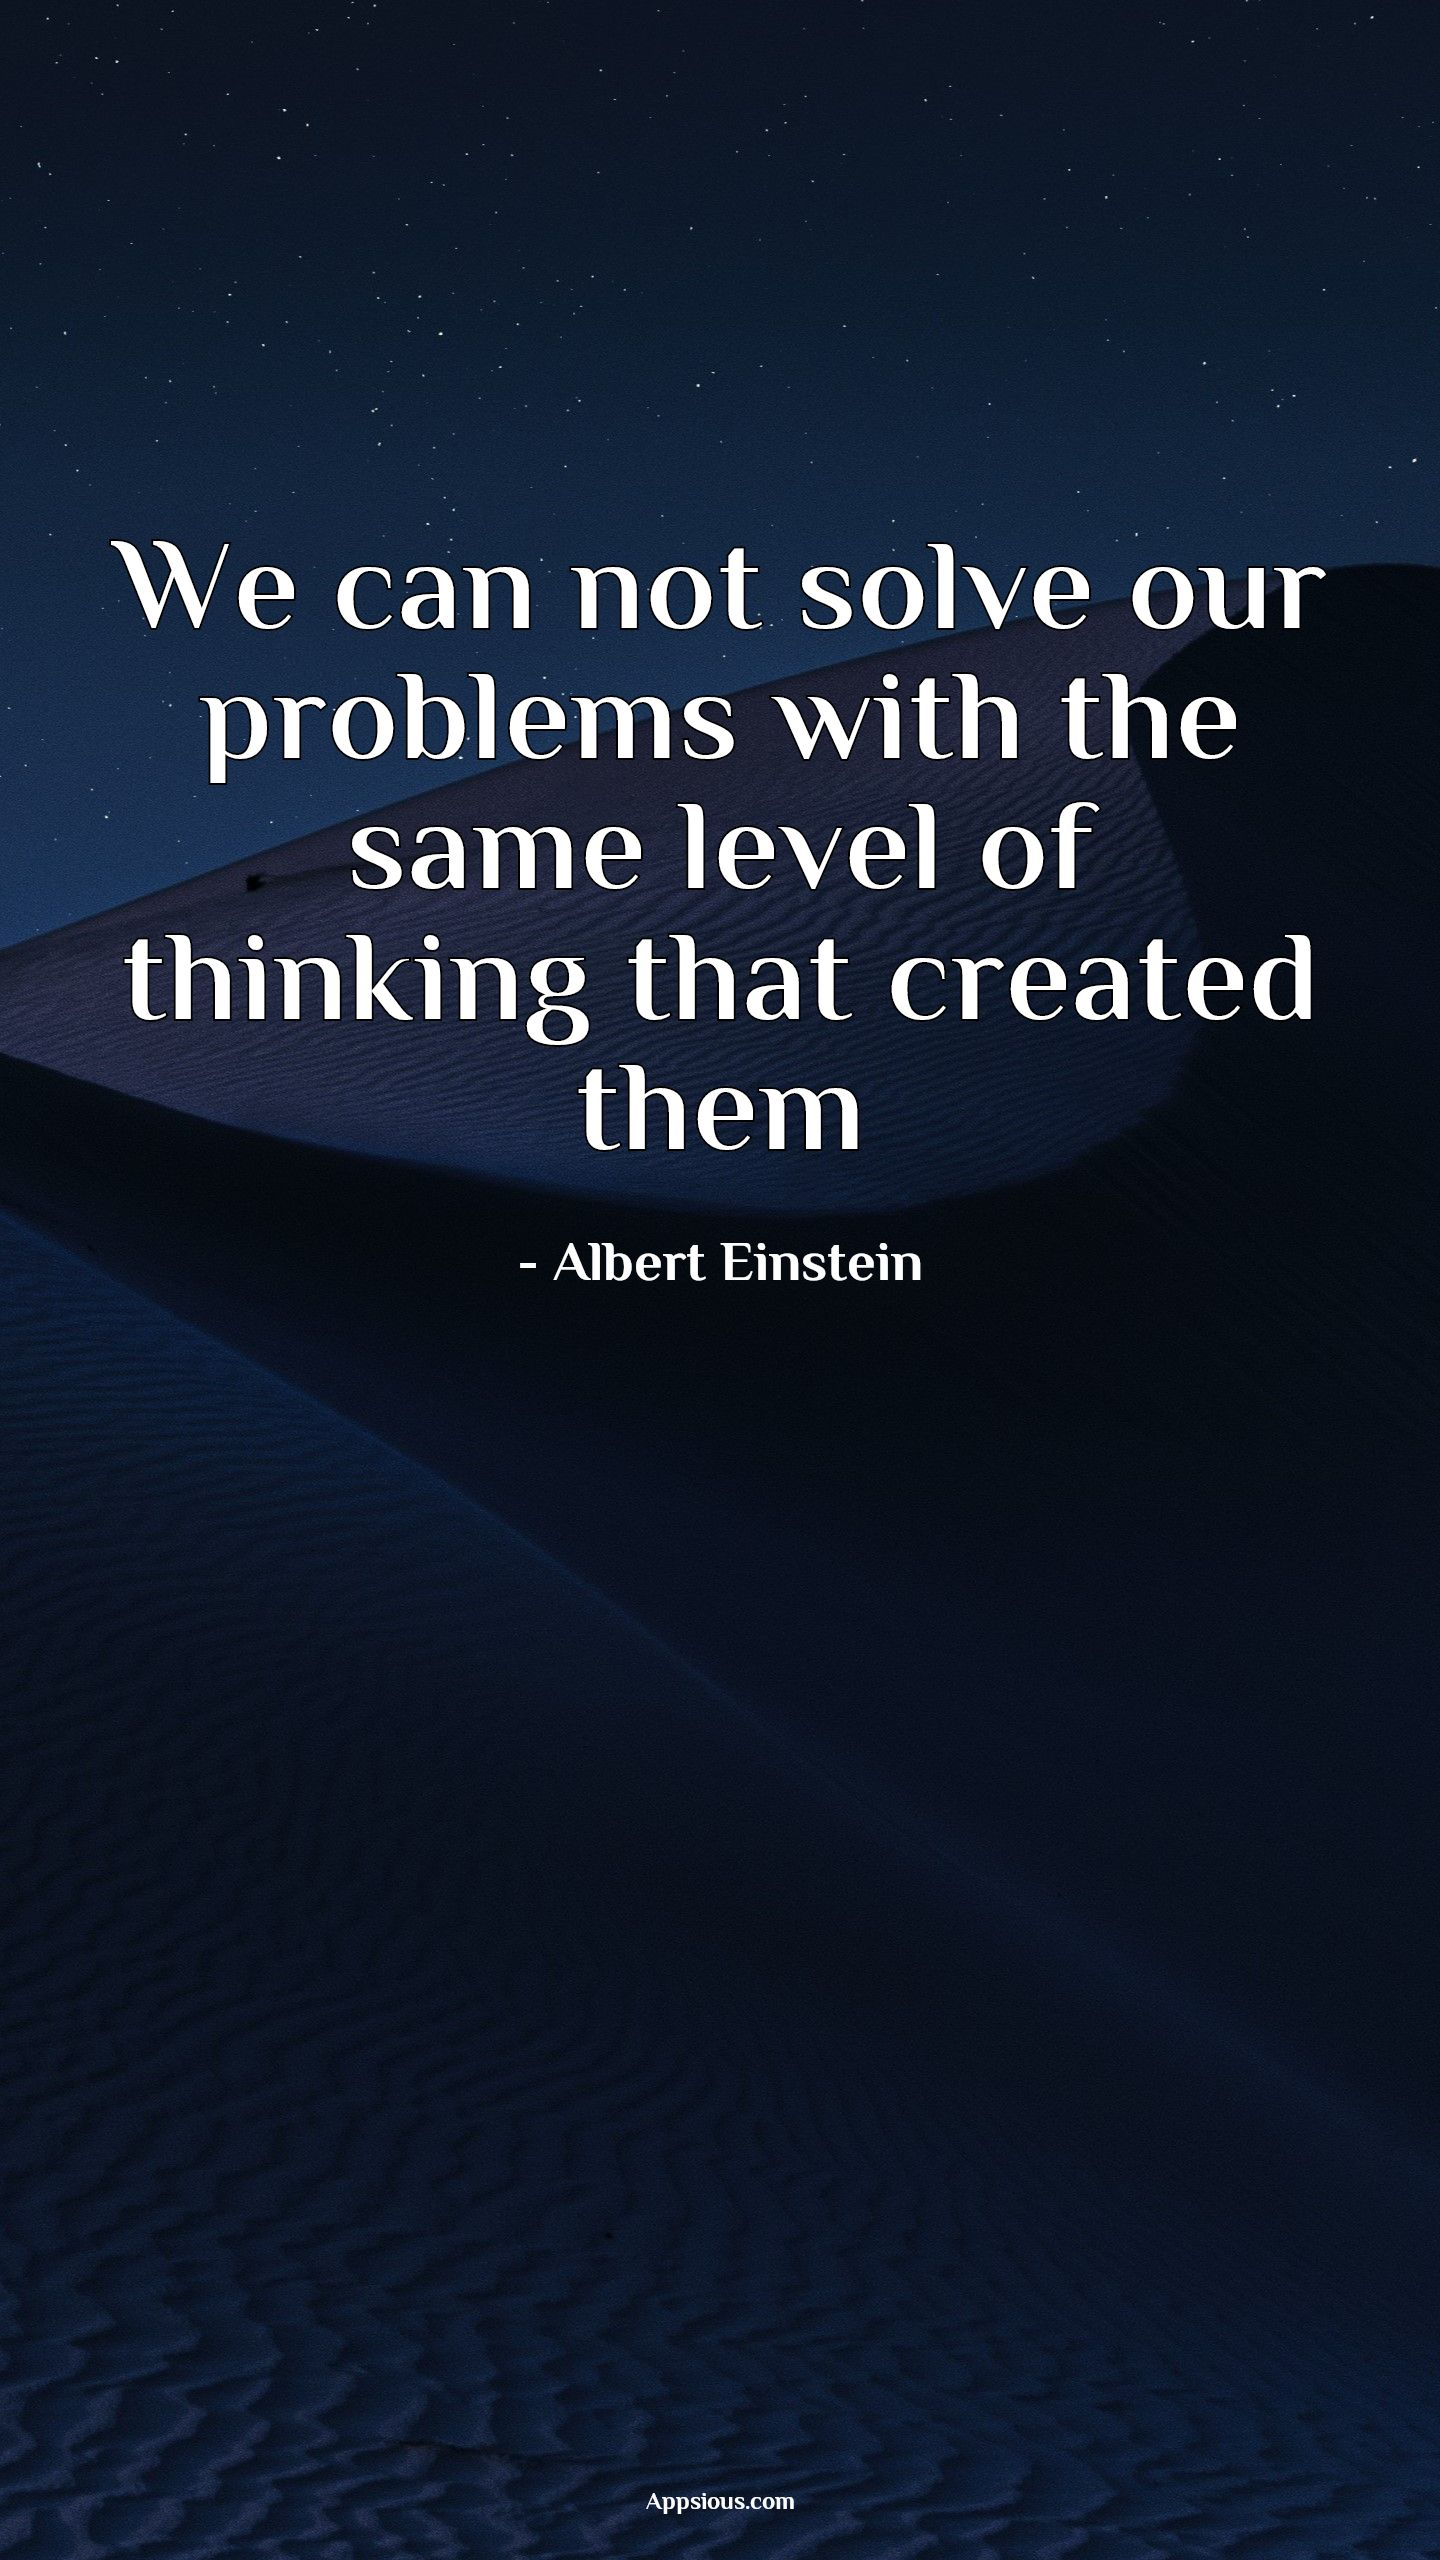 We can not solve our problems with the same level of thinking that created them